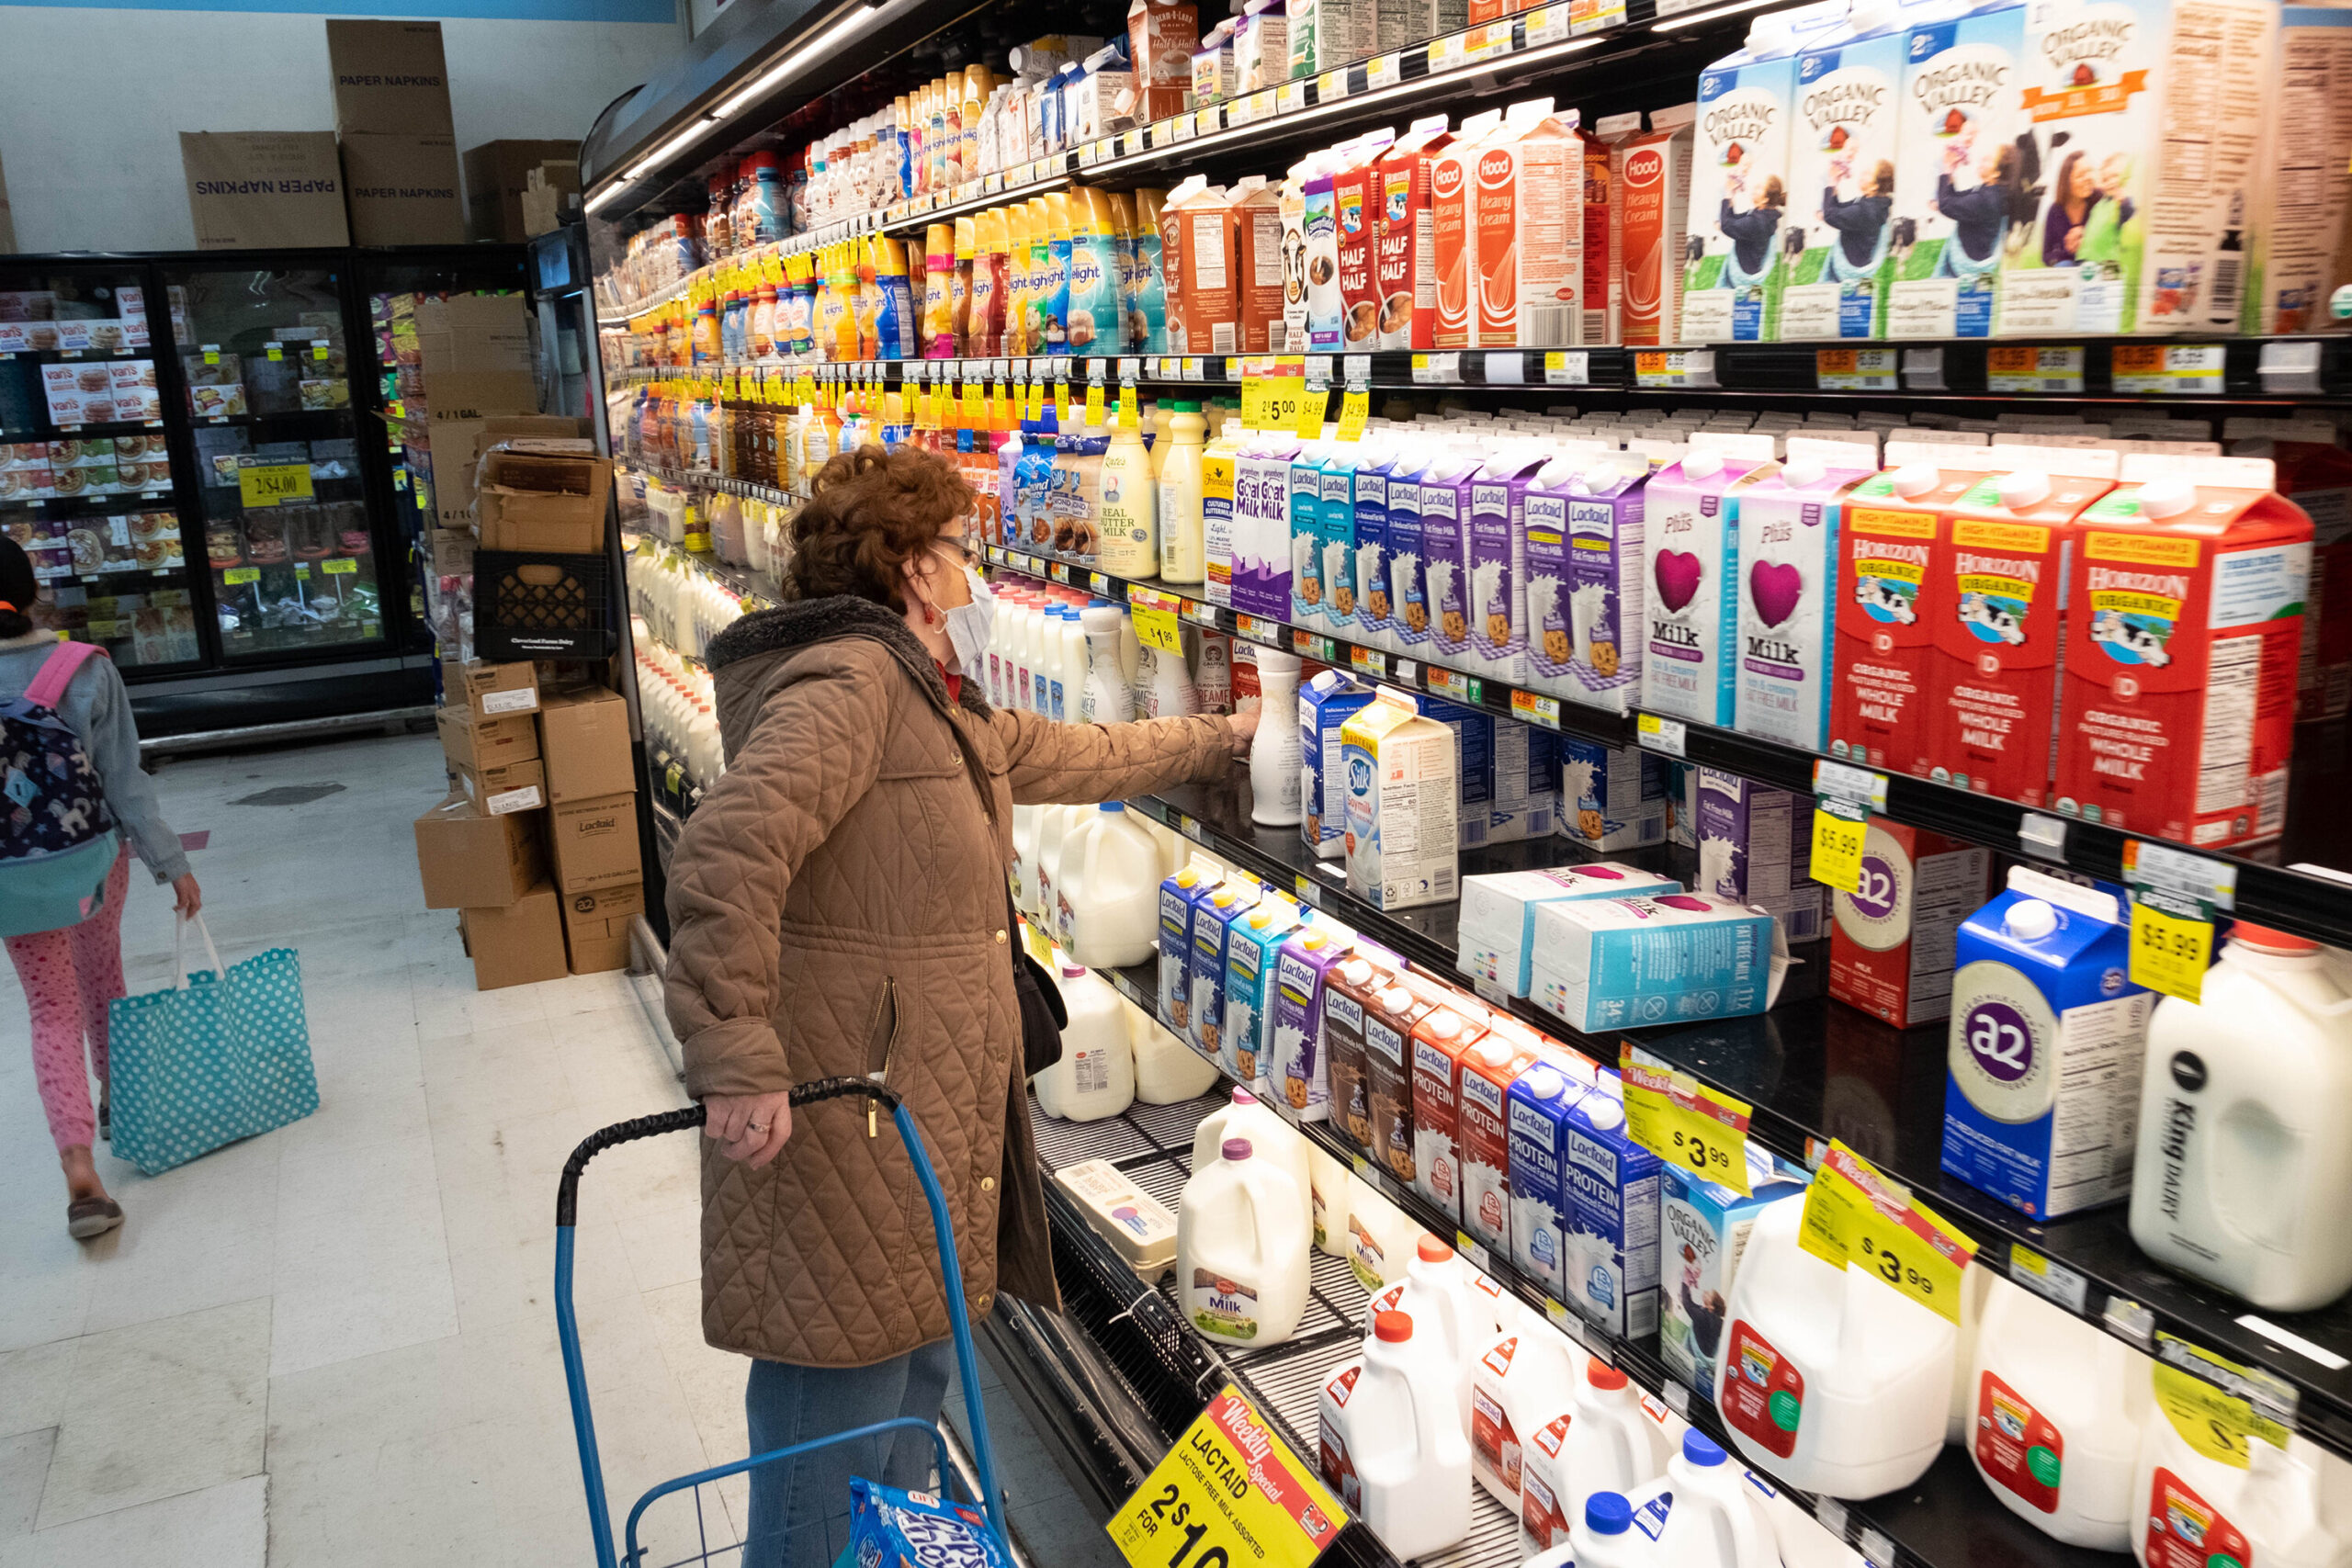 <i>Braulio Jatar/SOPA Images/Shutterstock</i><br/>The dairy shelf is crowded